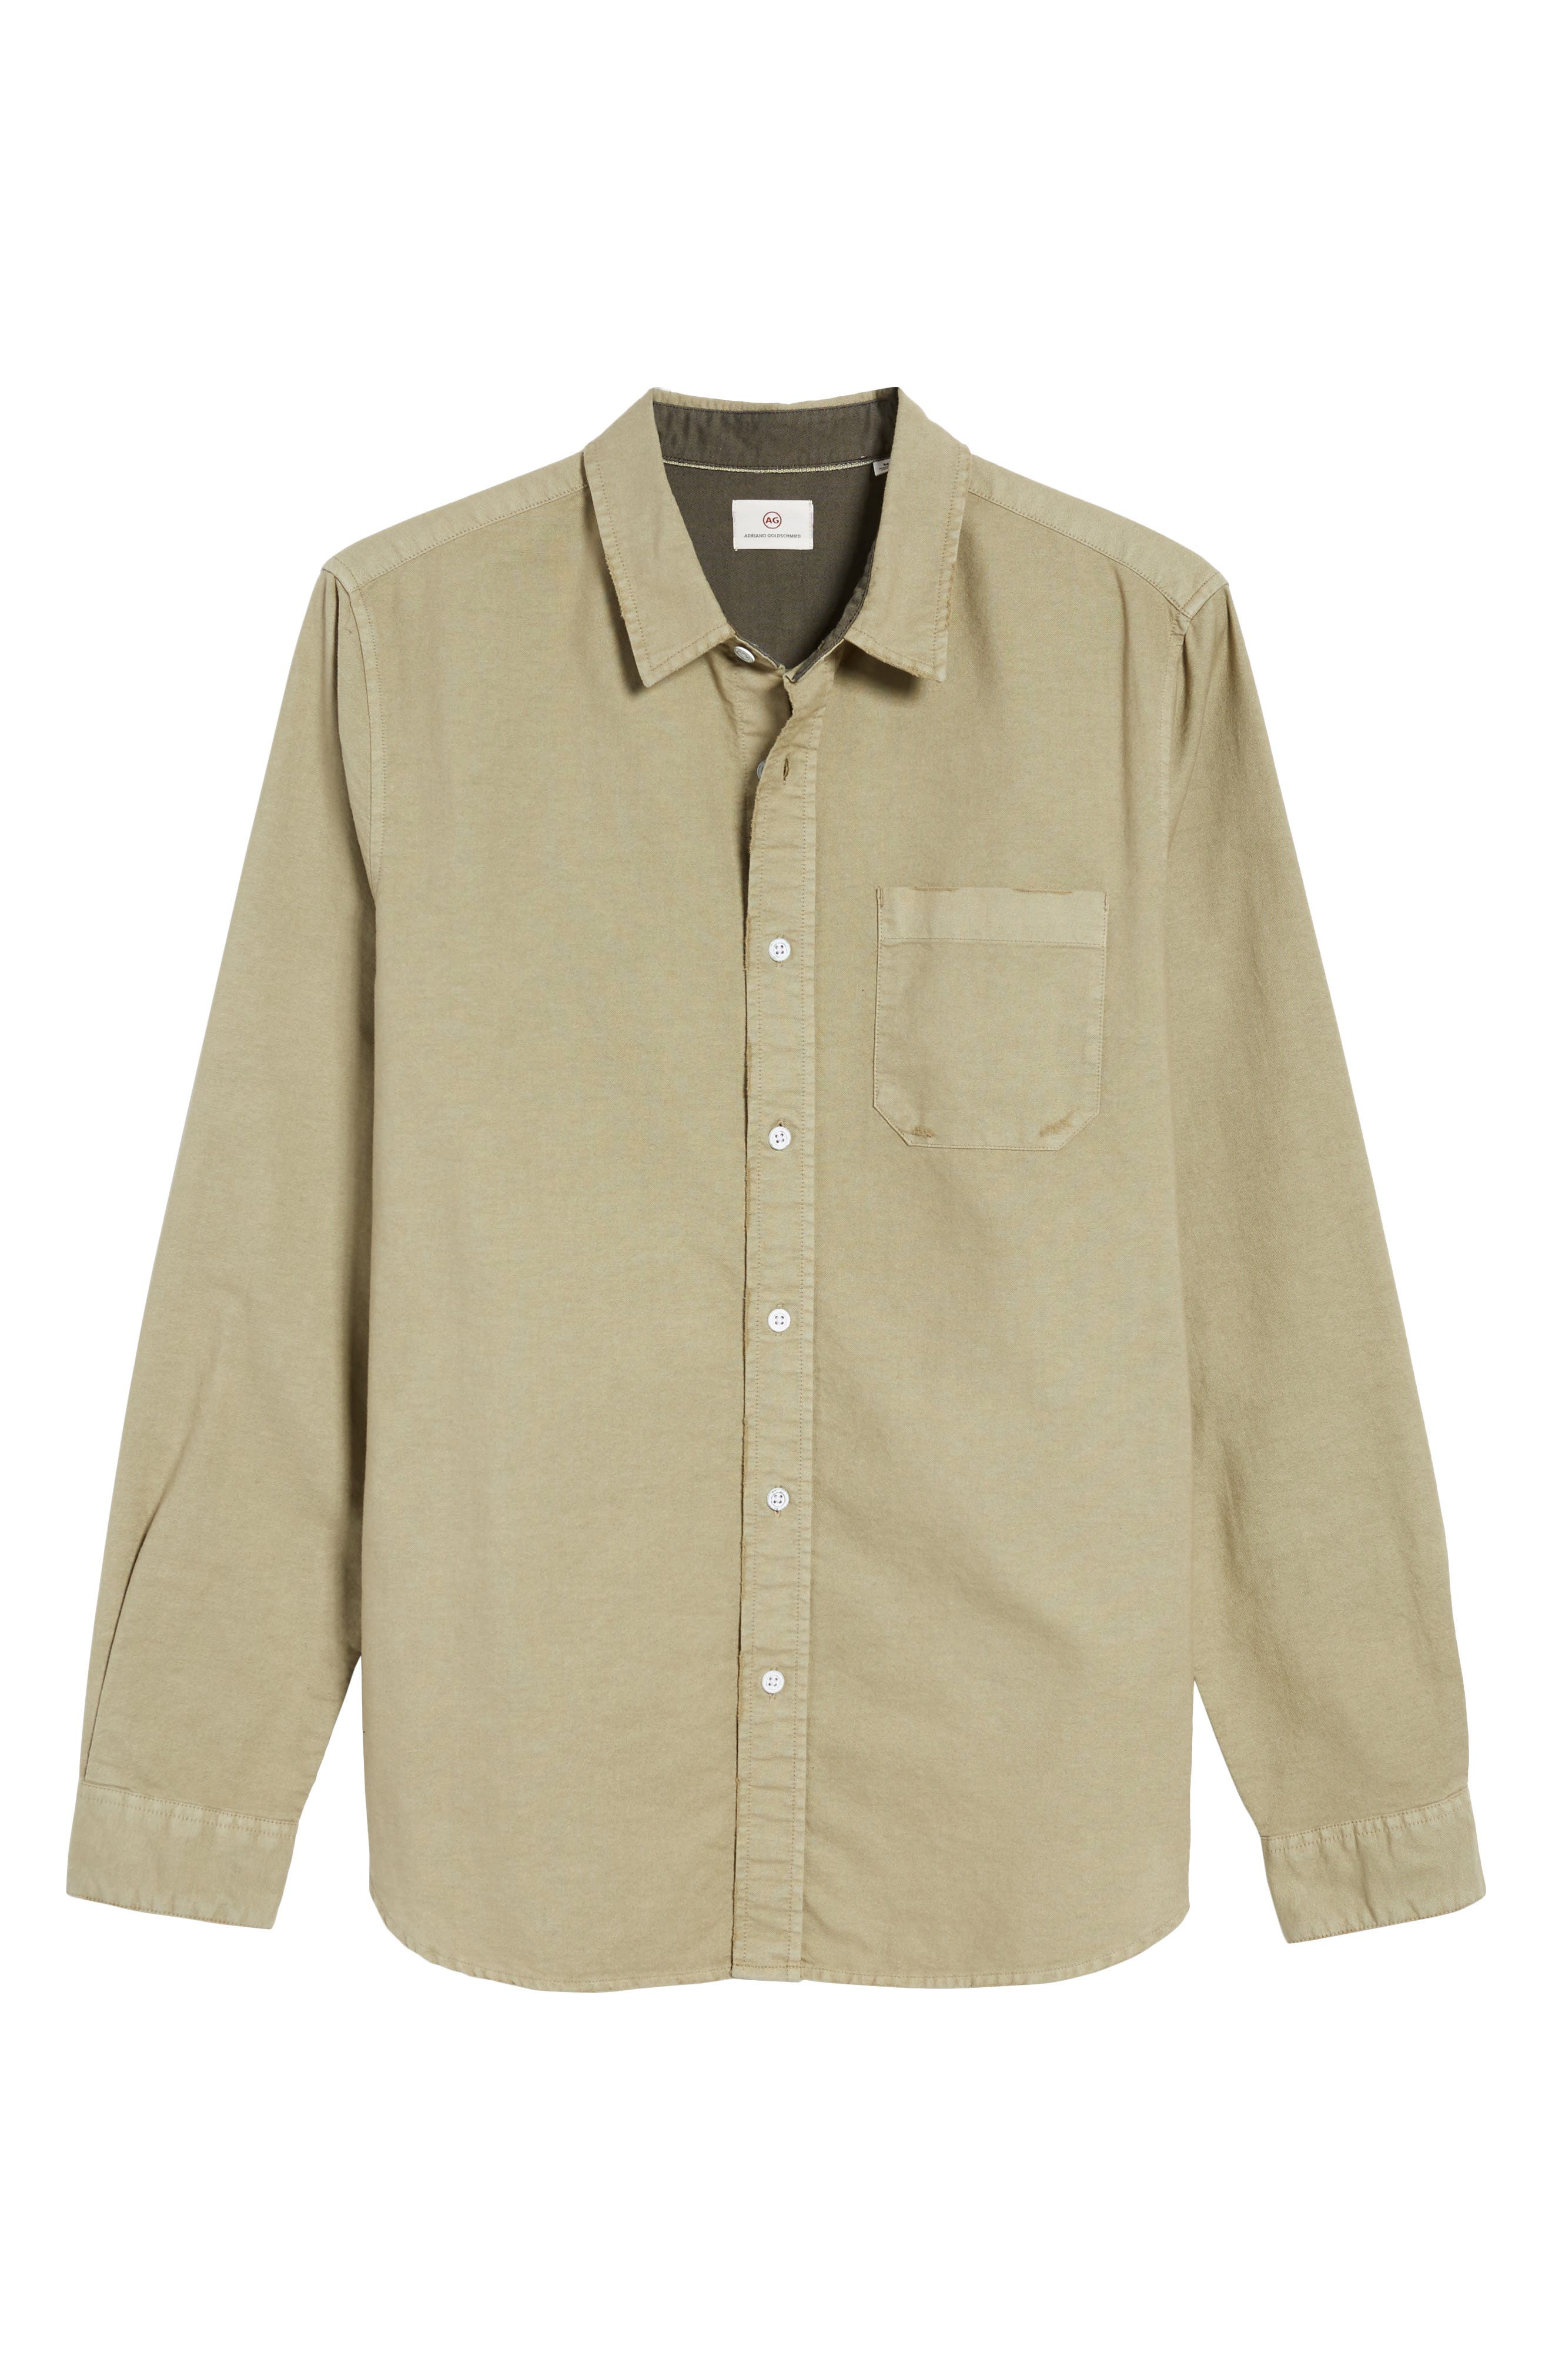 Caleb Slim Fit Twill Sport Shirt,                             Alternate thumbnail 6, color,                             5 Years Pigment New Moss